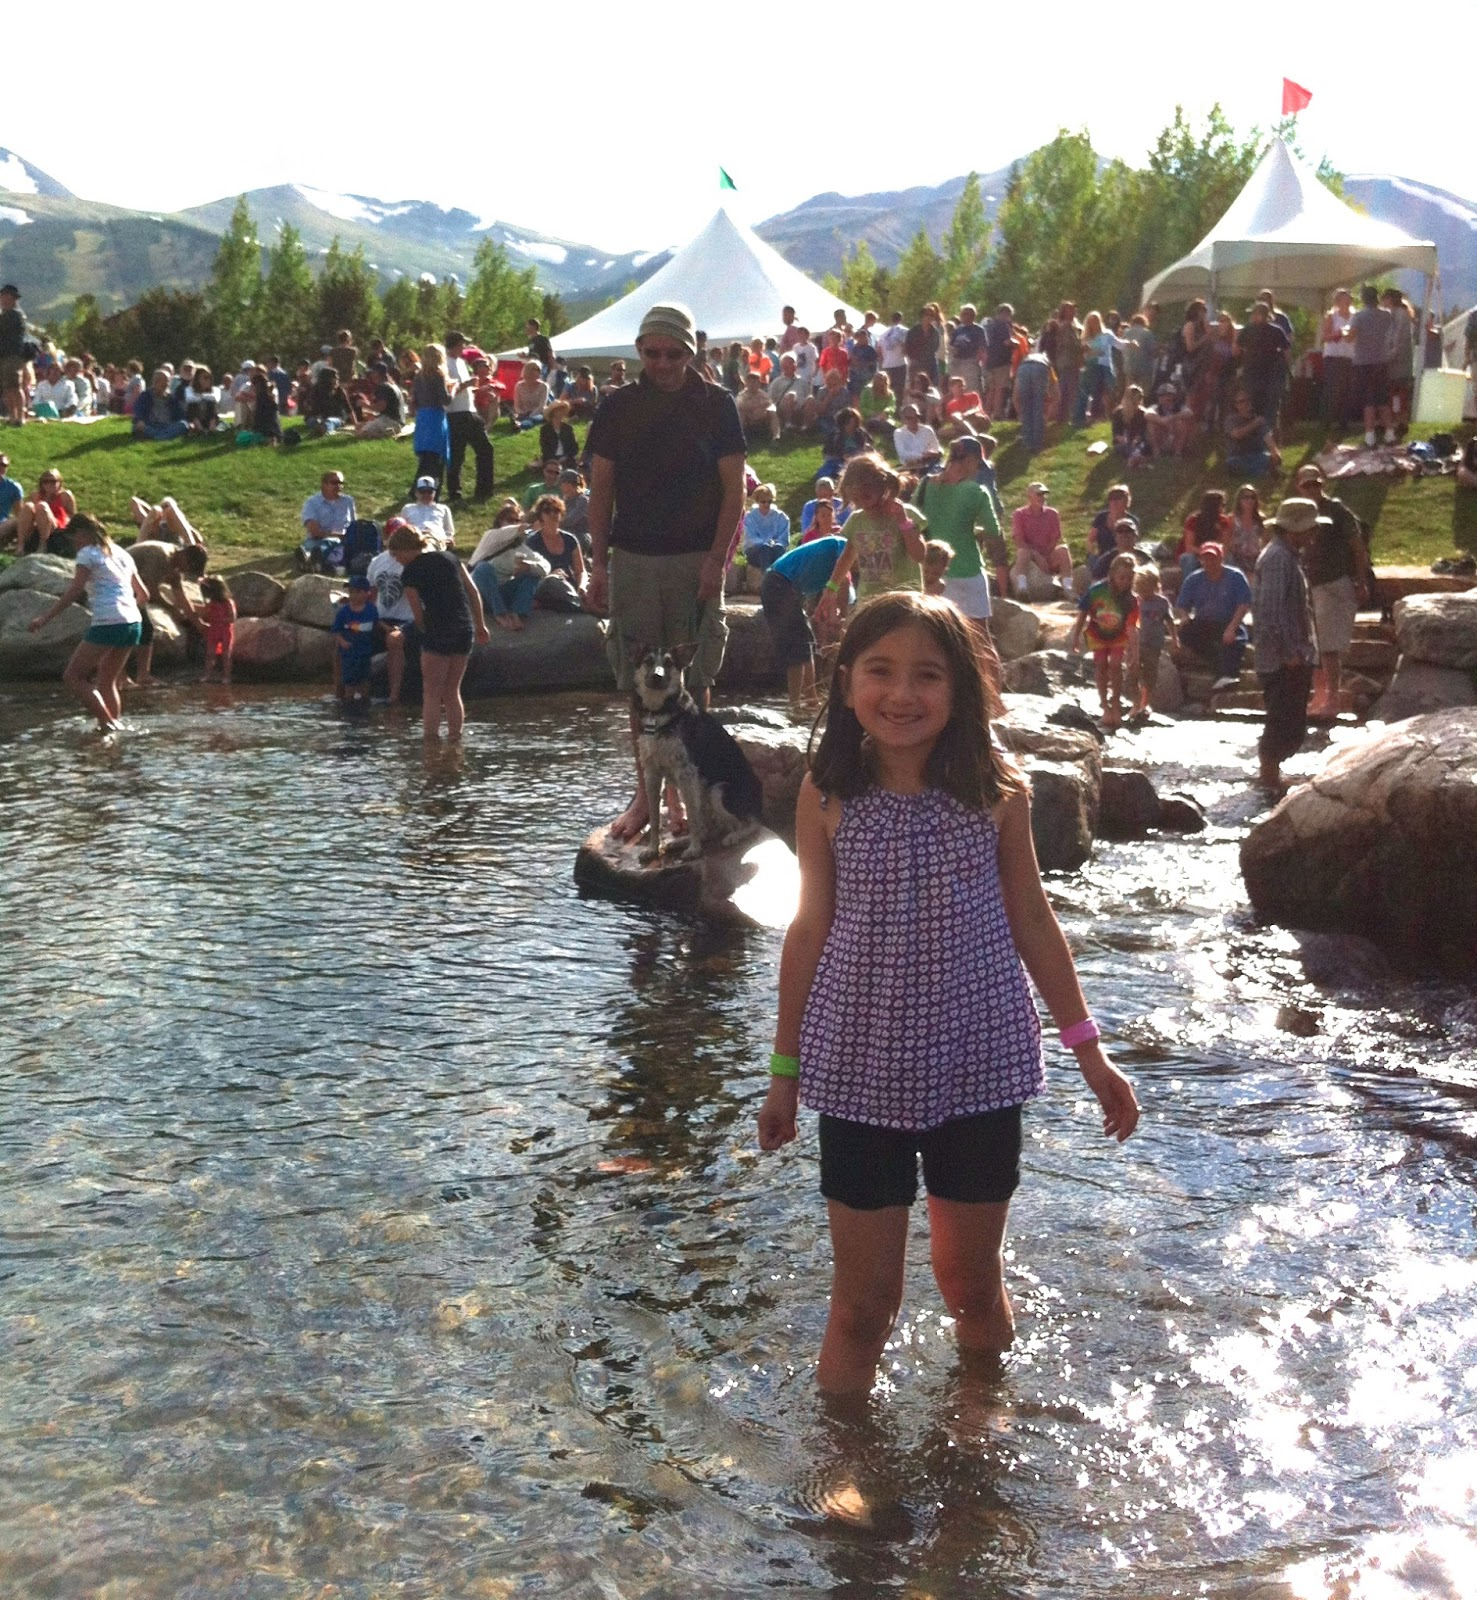 TRIPS: Free Things To Do In Breckenridge, CO